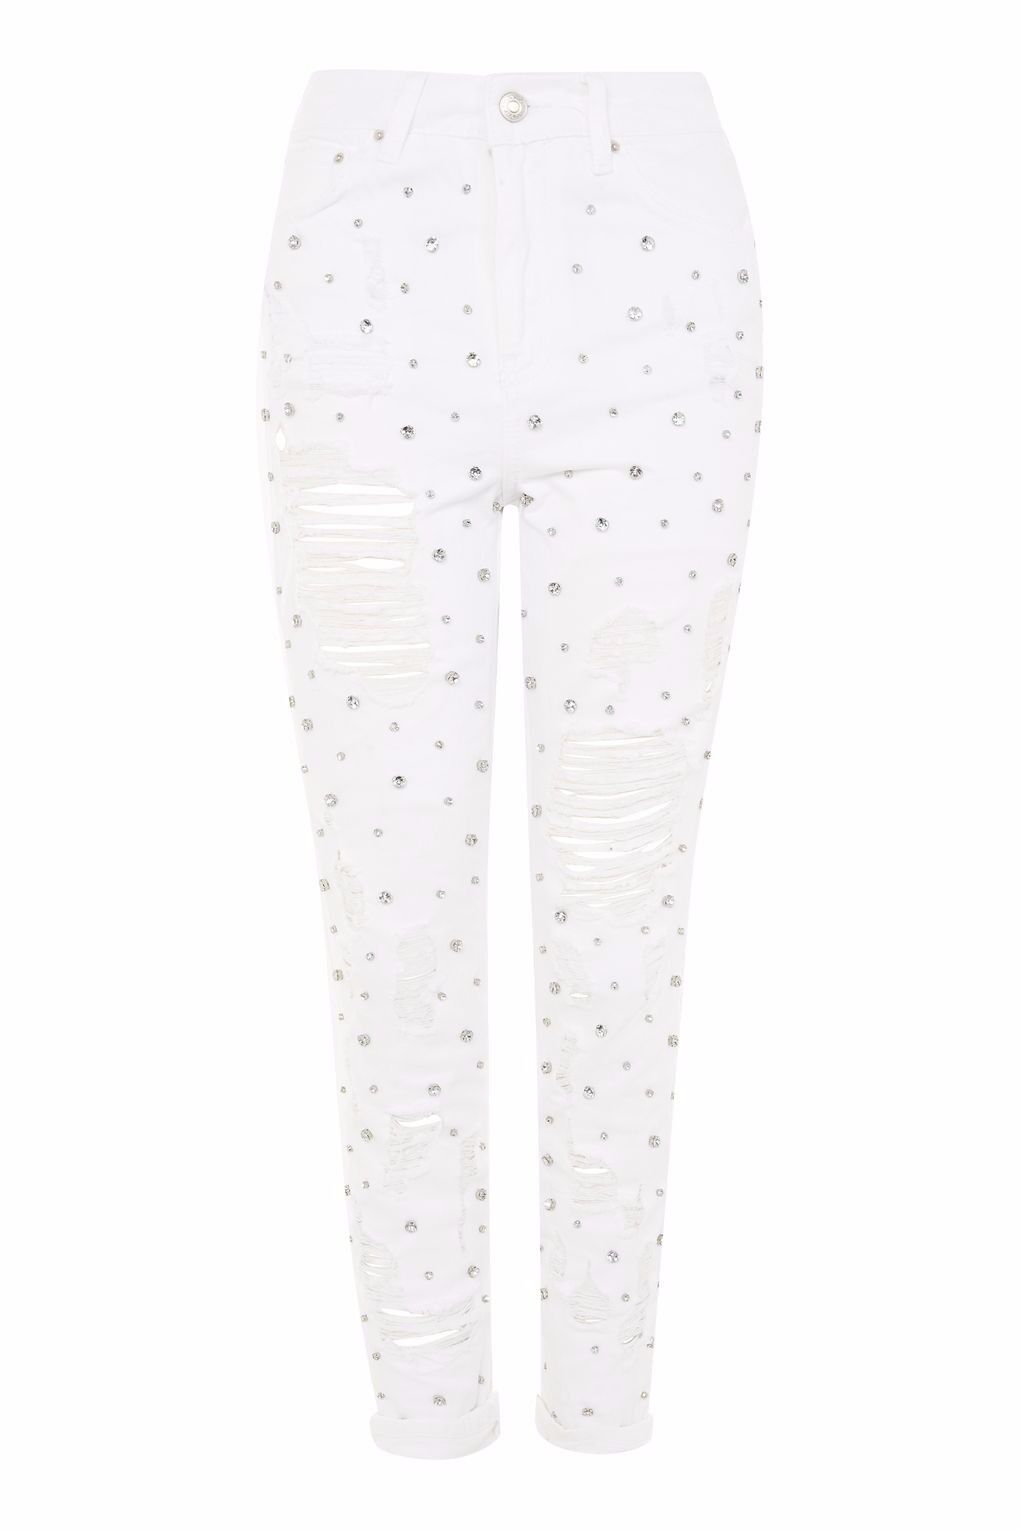 Topshop MOTO Limited Edition White Gem Stone Mom Jeans Size 28 32 RP